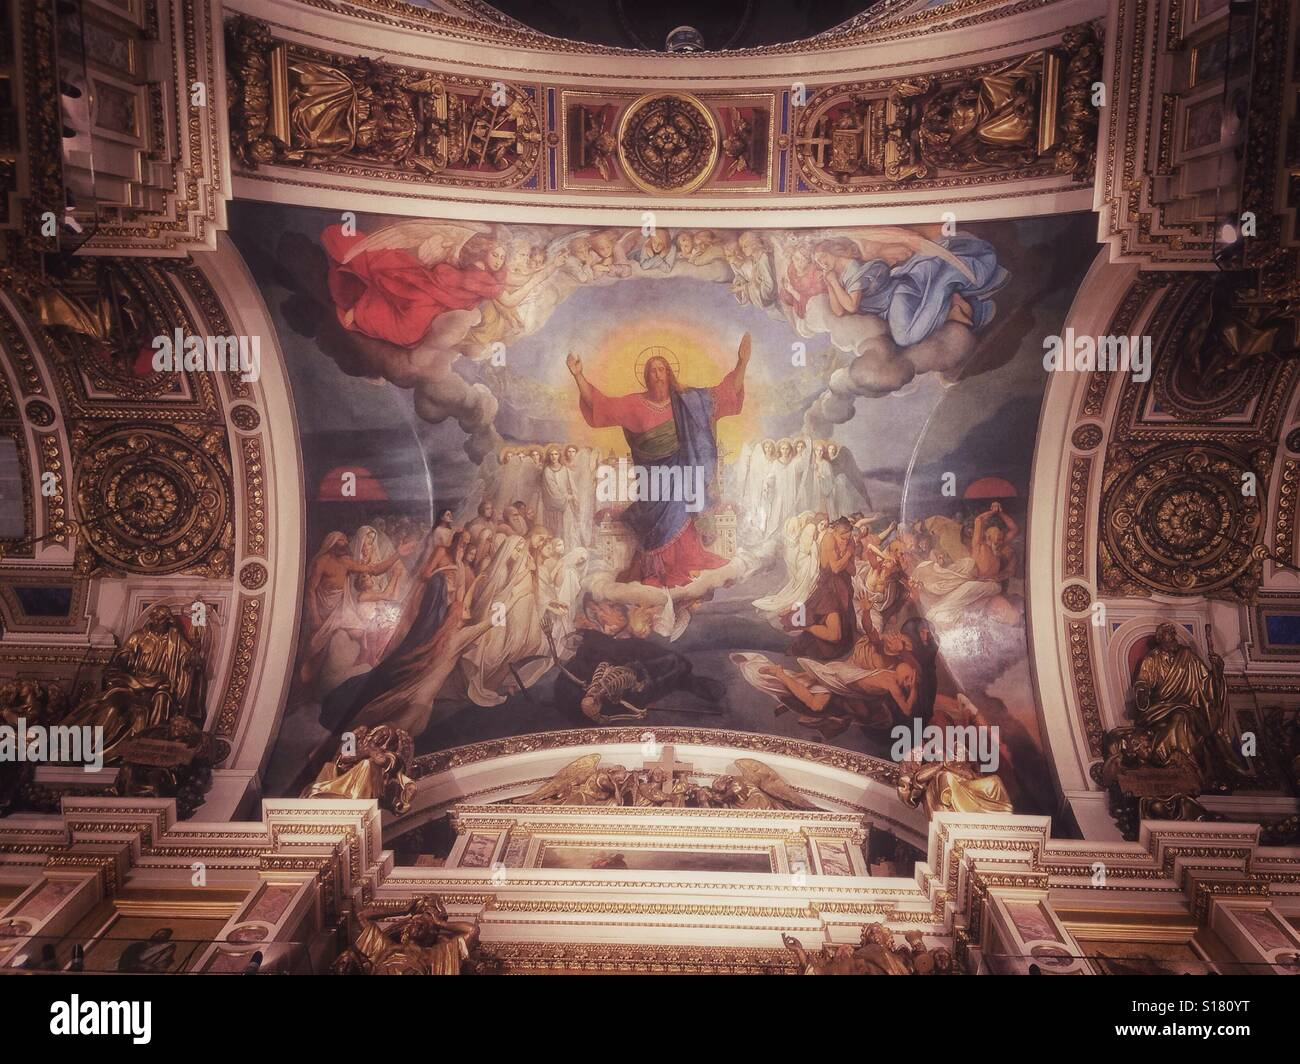 Painted ceiling of Saint Isaac Basilica in Saint Petersburg, Russia - Stock Image